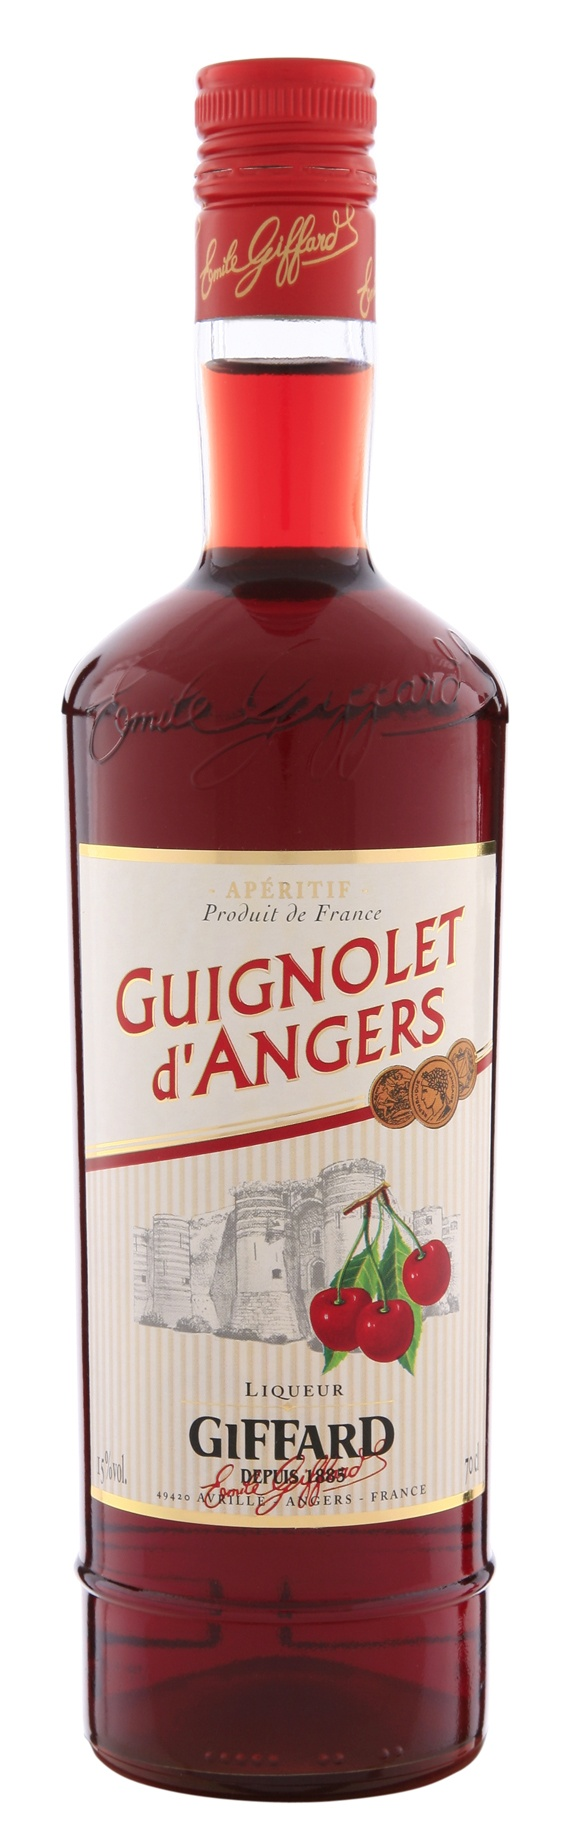 "Guignolet d'Angers: natural aperitif produced according to traditional manufacturing methods : maceration into alcohol of ""Griottes Montmorency"" cherries and darker and sweeter cherries."